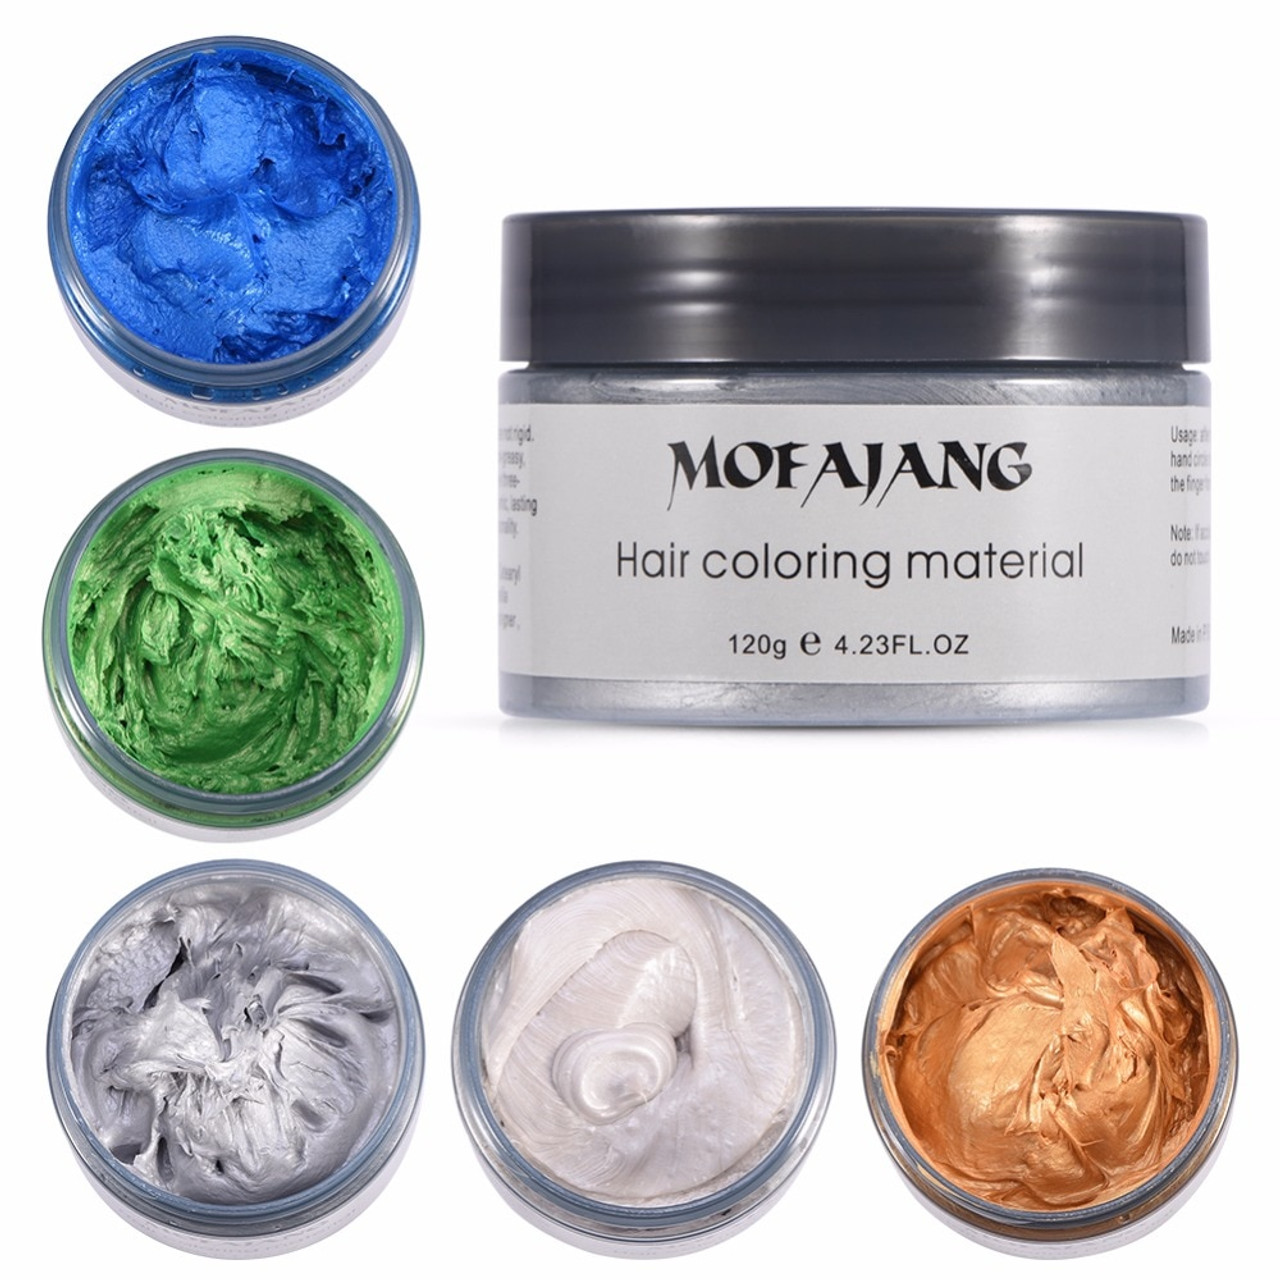 MOFAJANG 120g Hair Coloring Wax Silver Ash Grey Strong Hold Temporary Hair  Dye Gel Mud Easy Wash Hair Color Styling Promades Wax